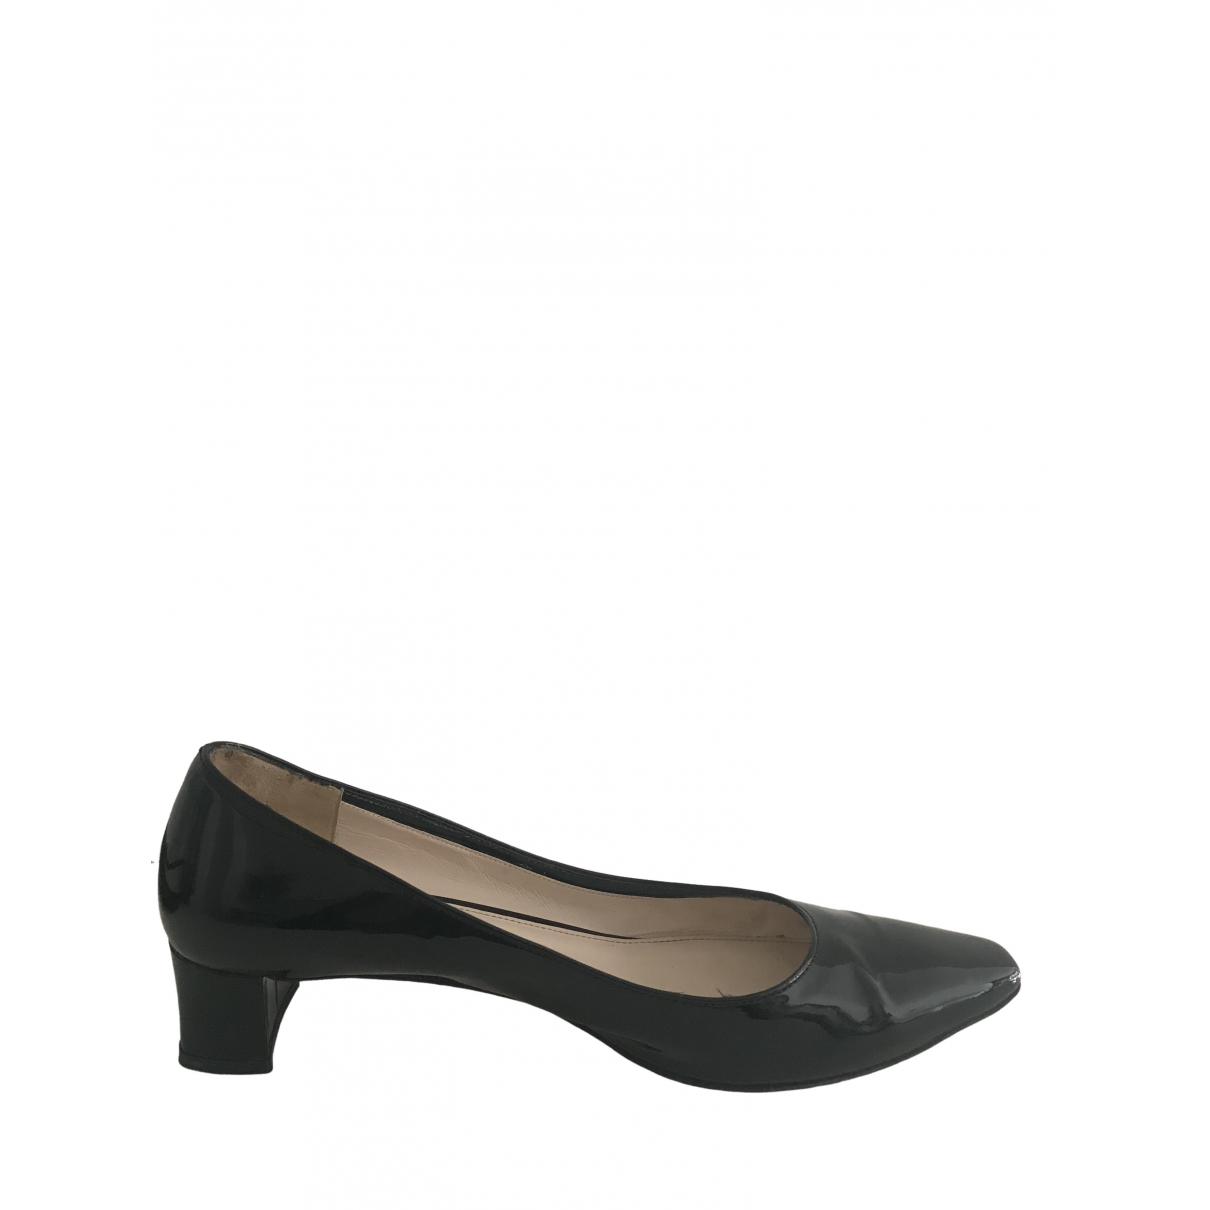 Prada \N Black Patent leather Heels for Women 40 IT